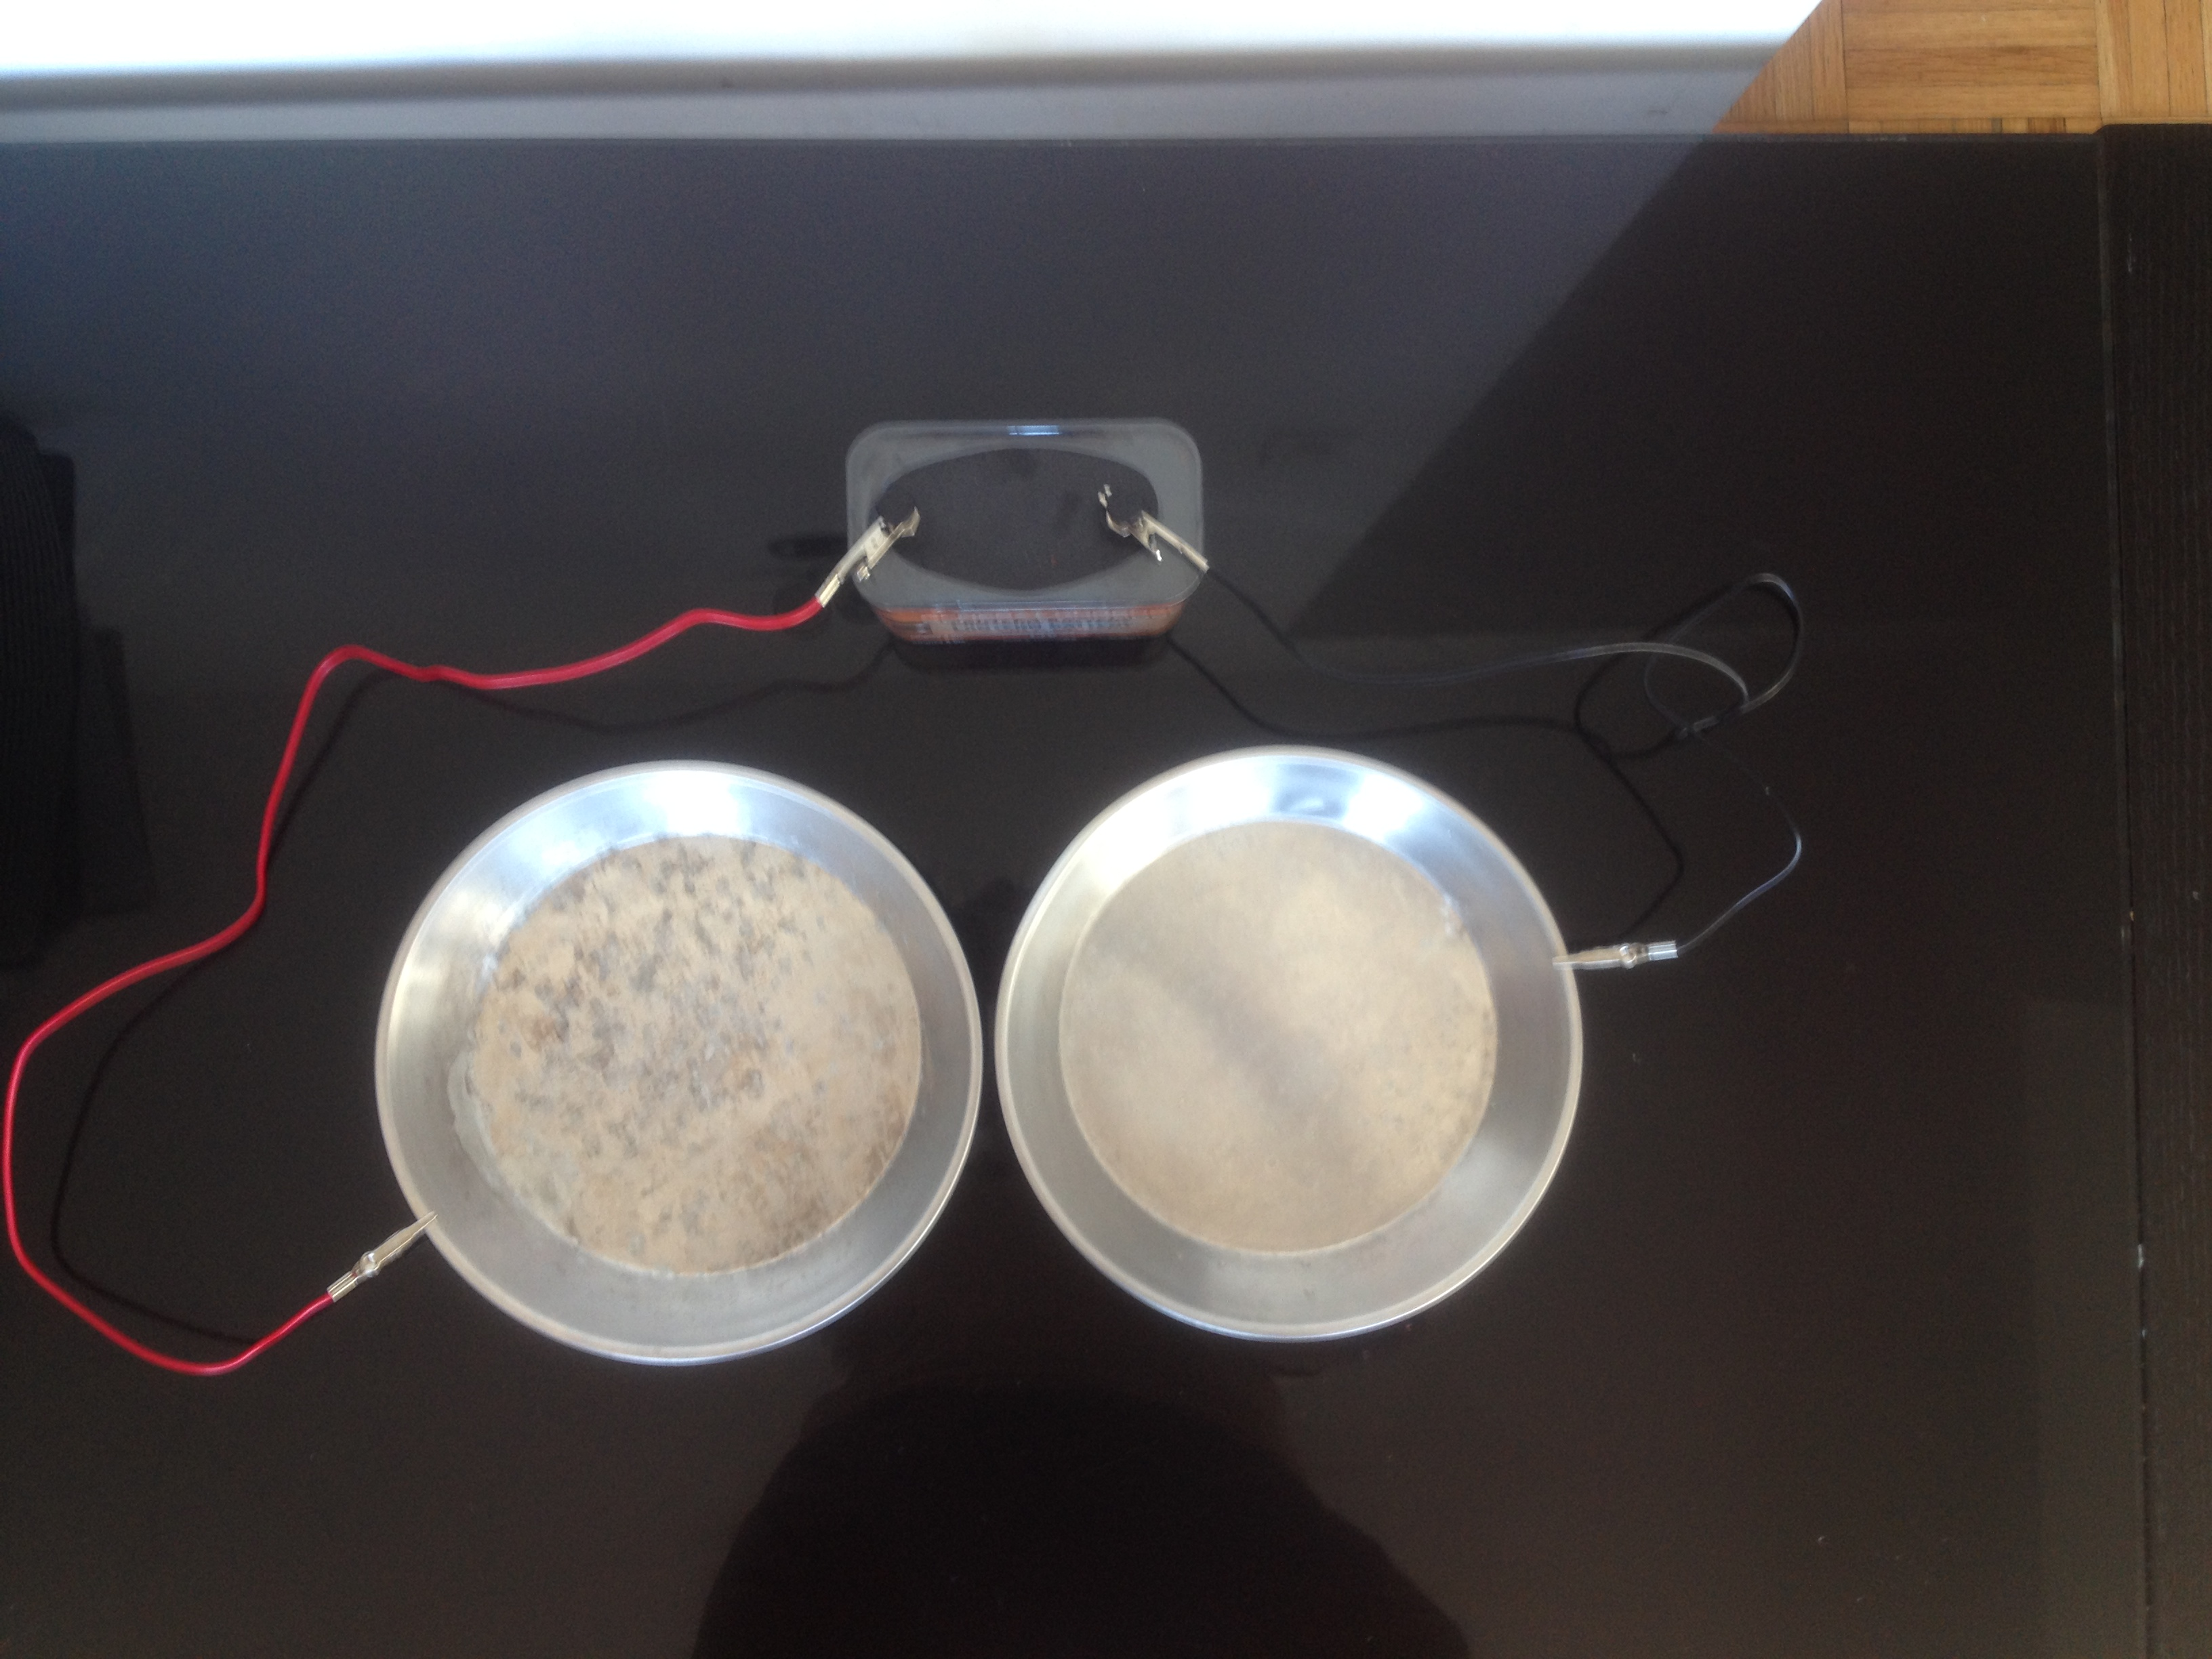 Homemade Iontophoresis Machine